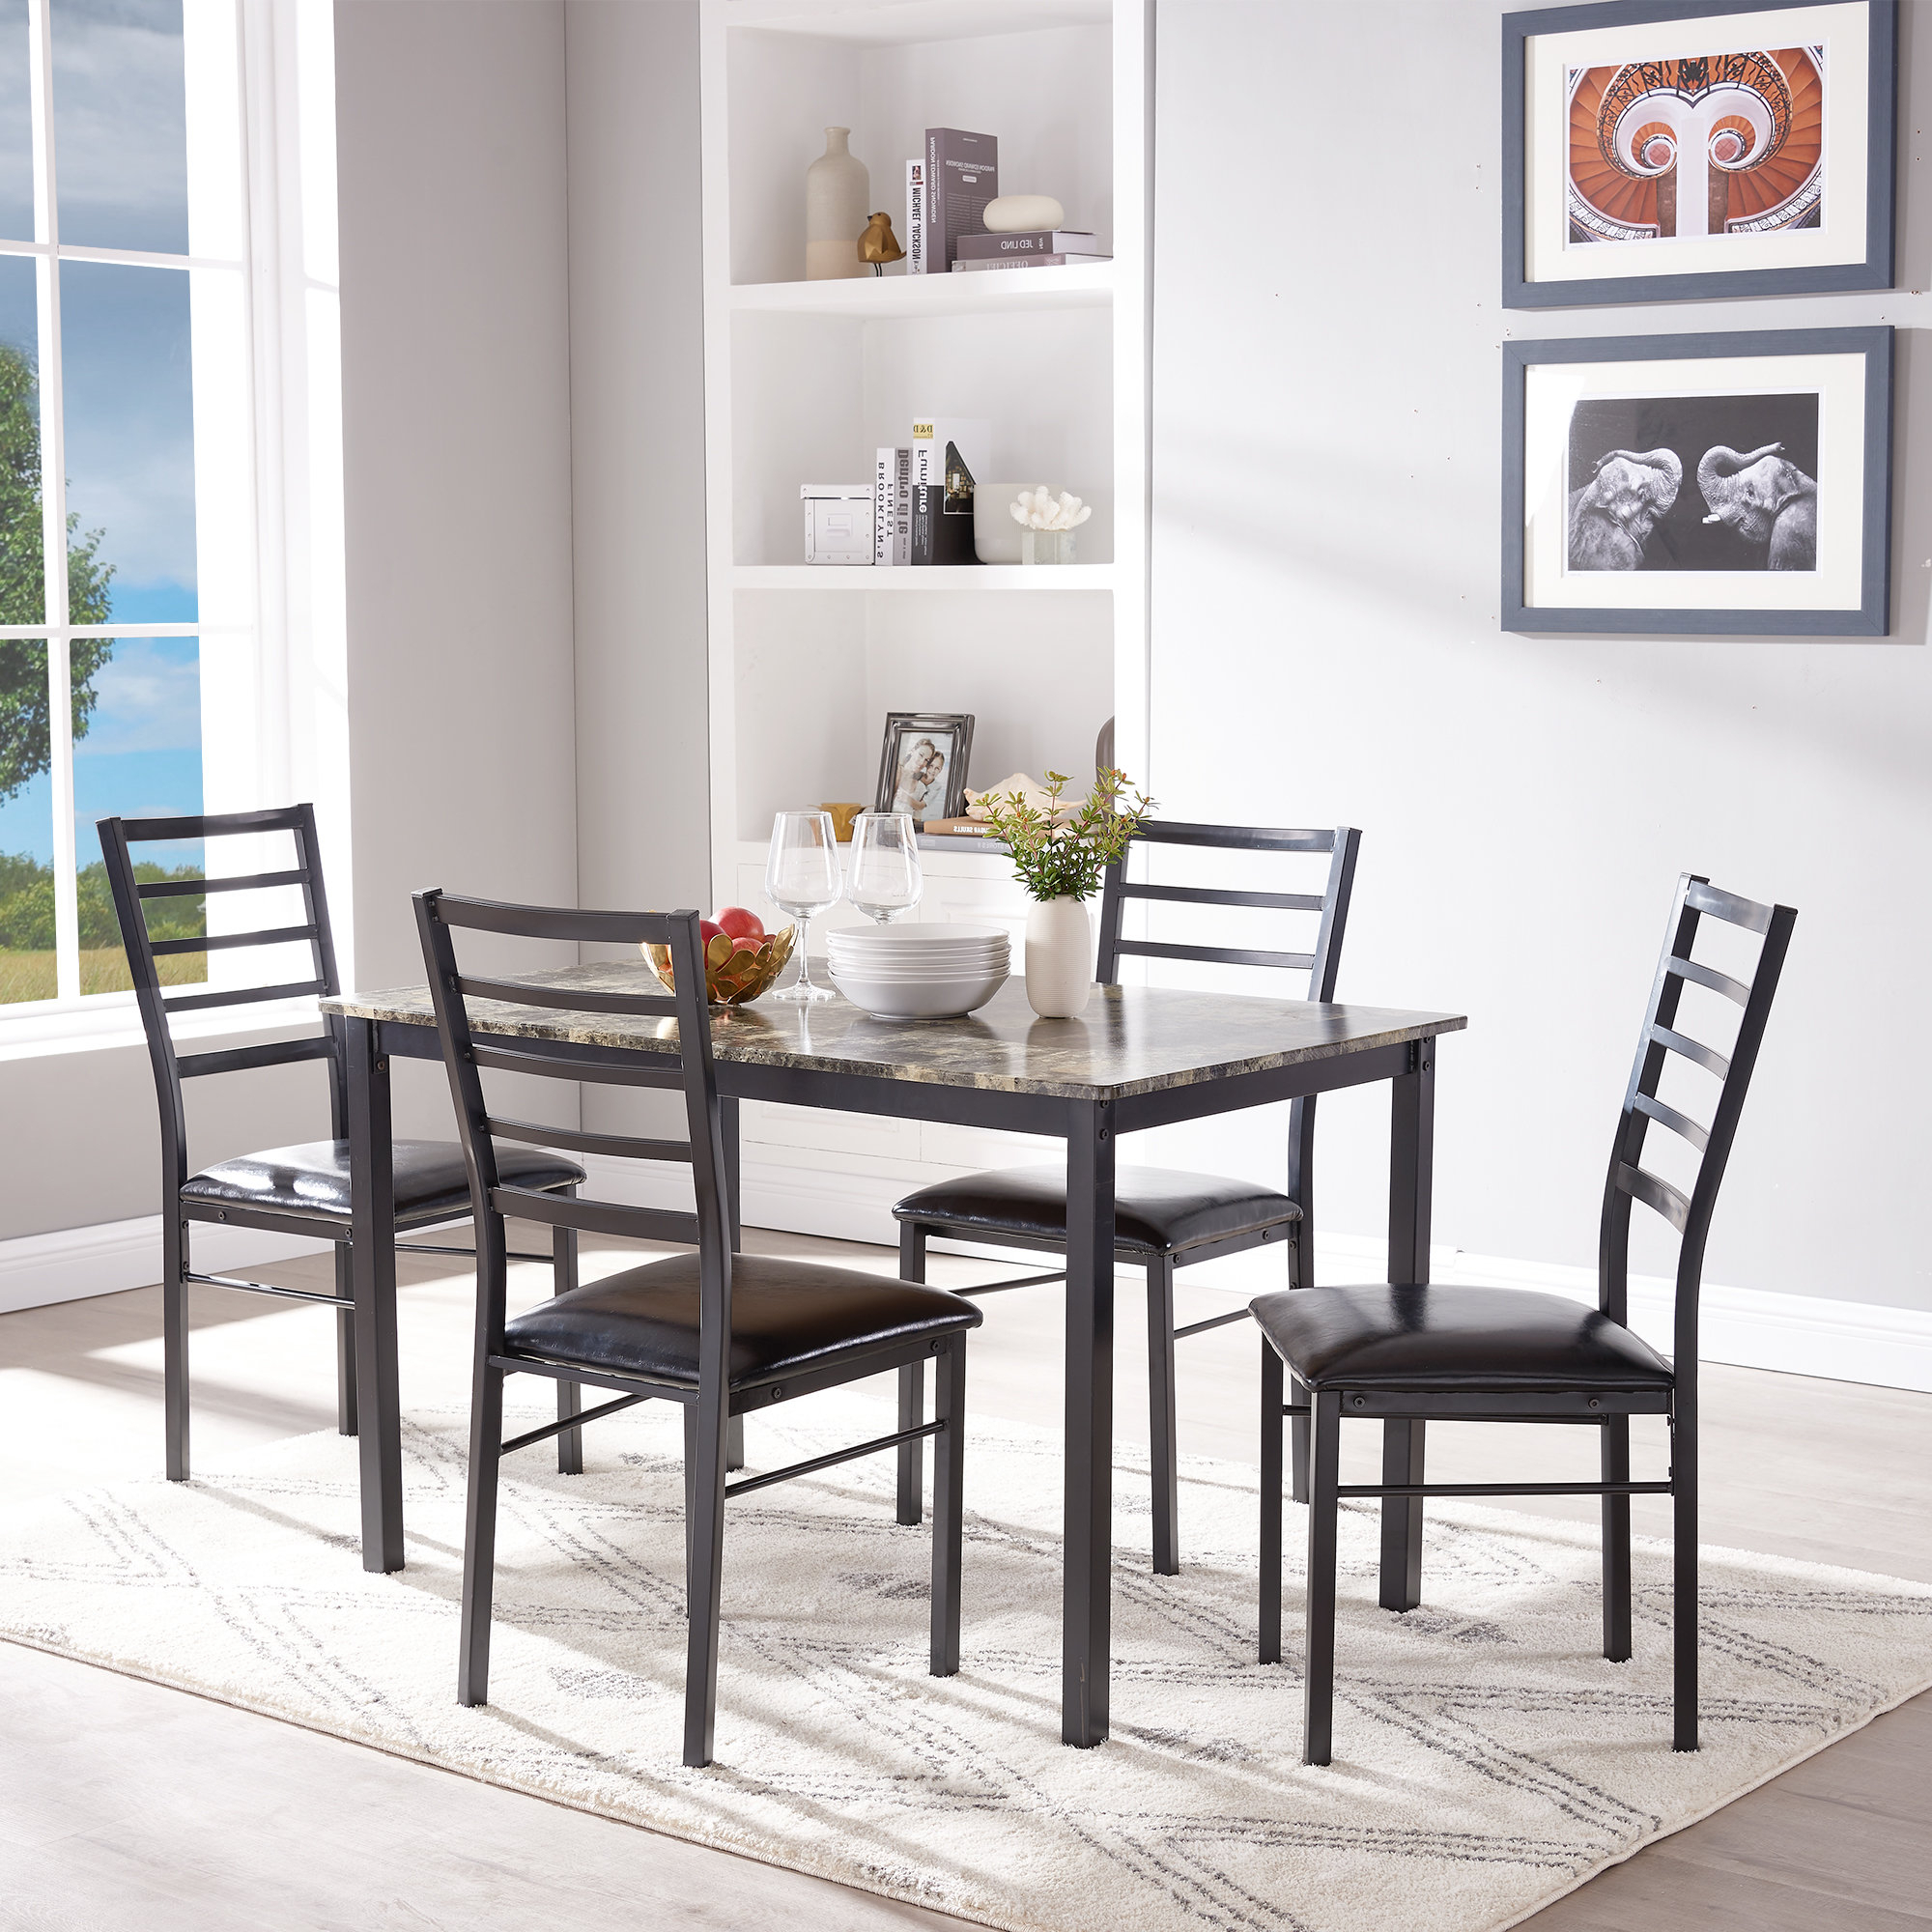 Most Popular Emmeline 5 Piece Breakfast Nook Dining Sets With Regard To Mukai 5 Piece Dining Set (View 4 of 20)